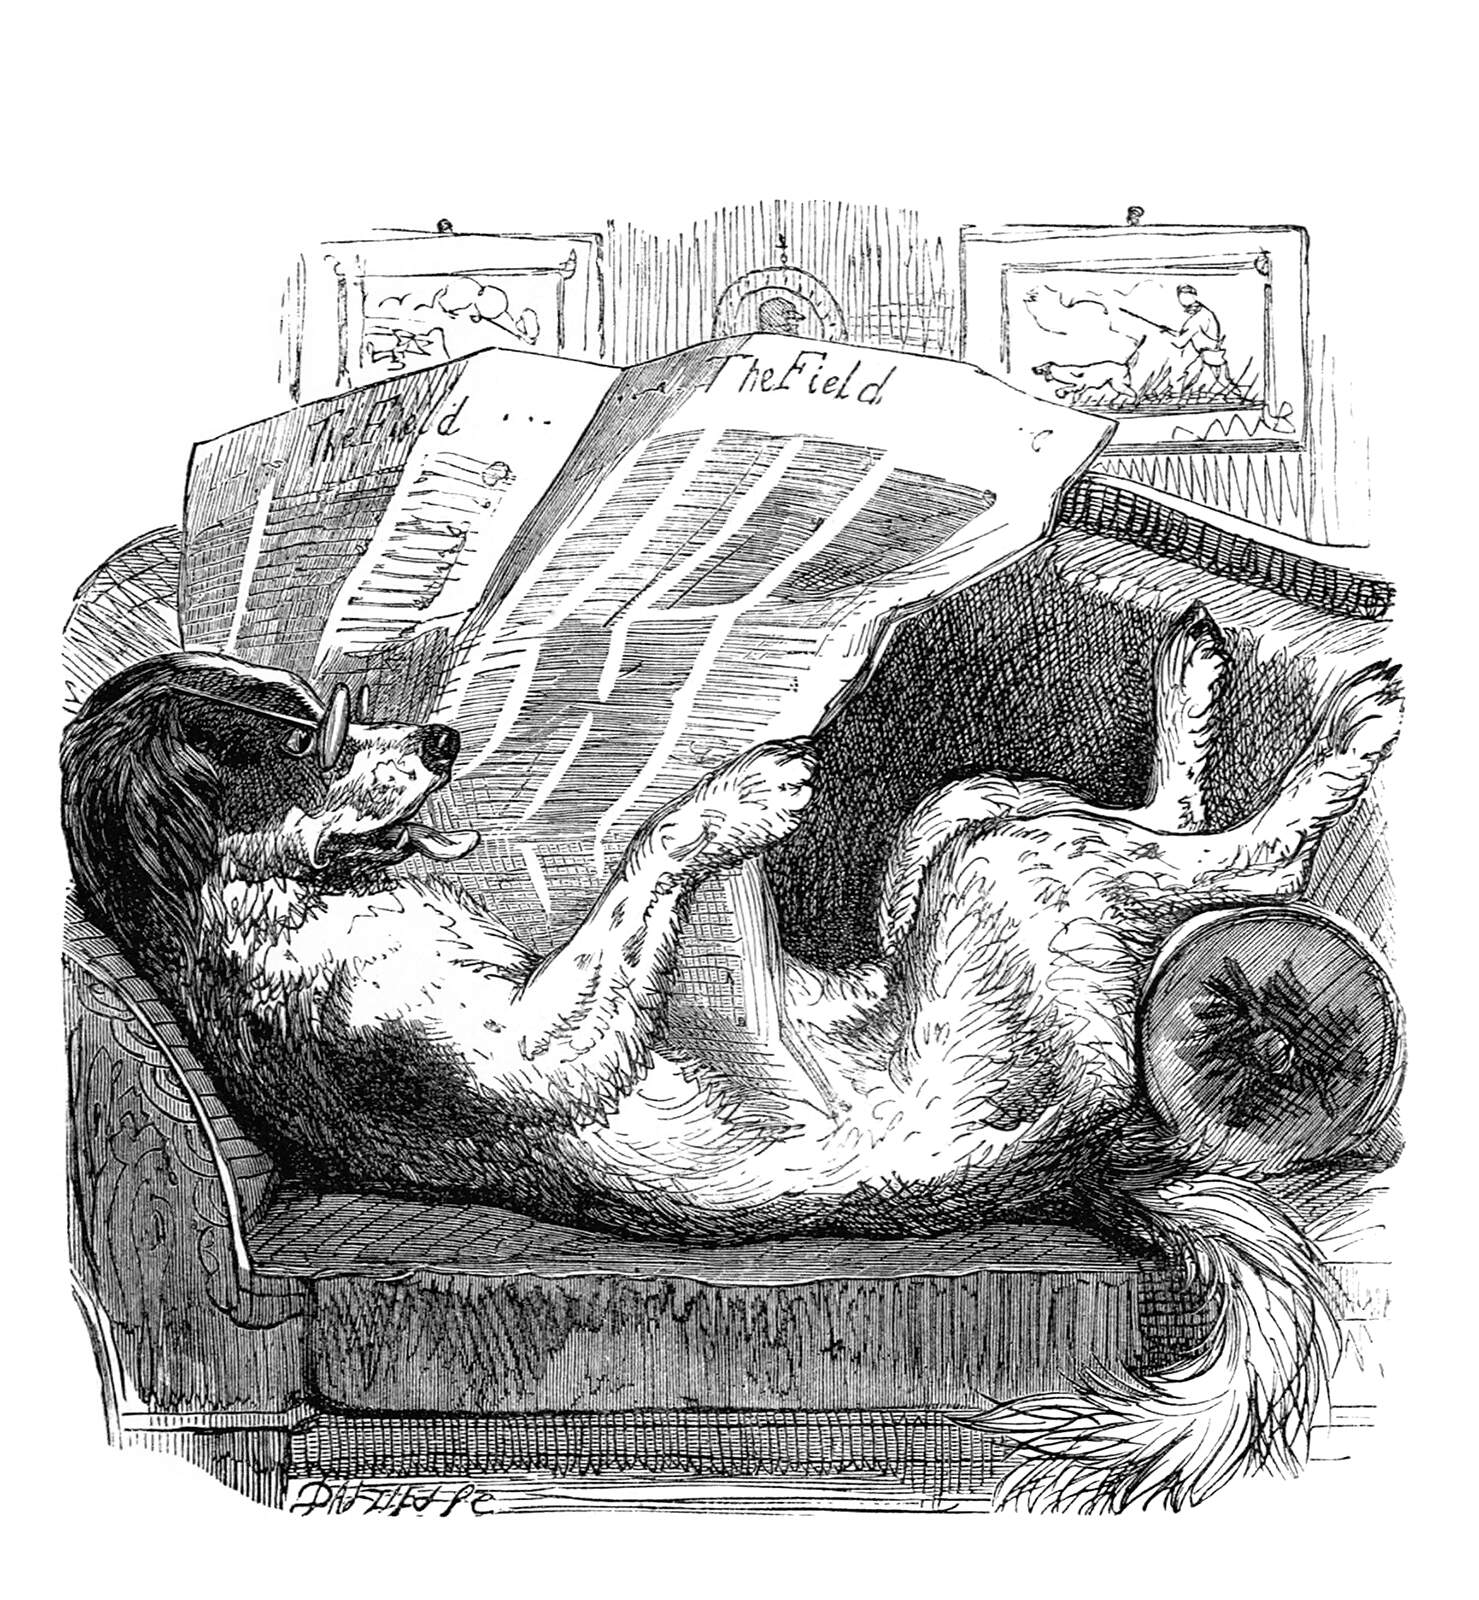 A dog reads the newspaper